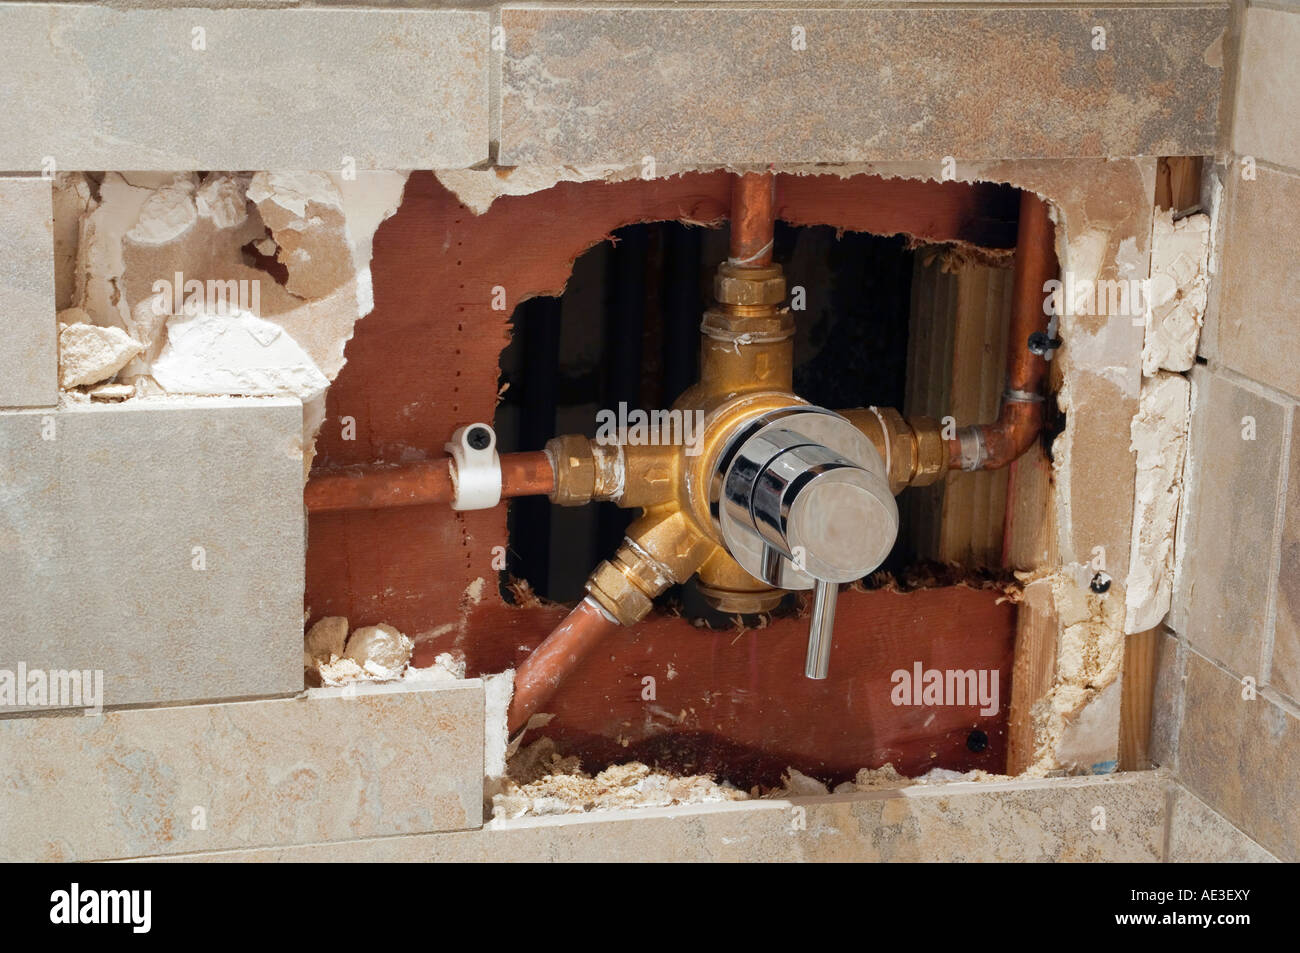 Exposed 4 Way Diverter Valve In Domestic Shower After